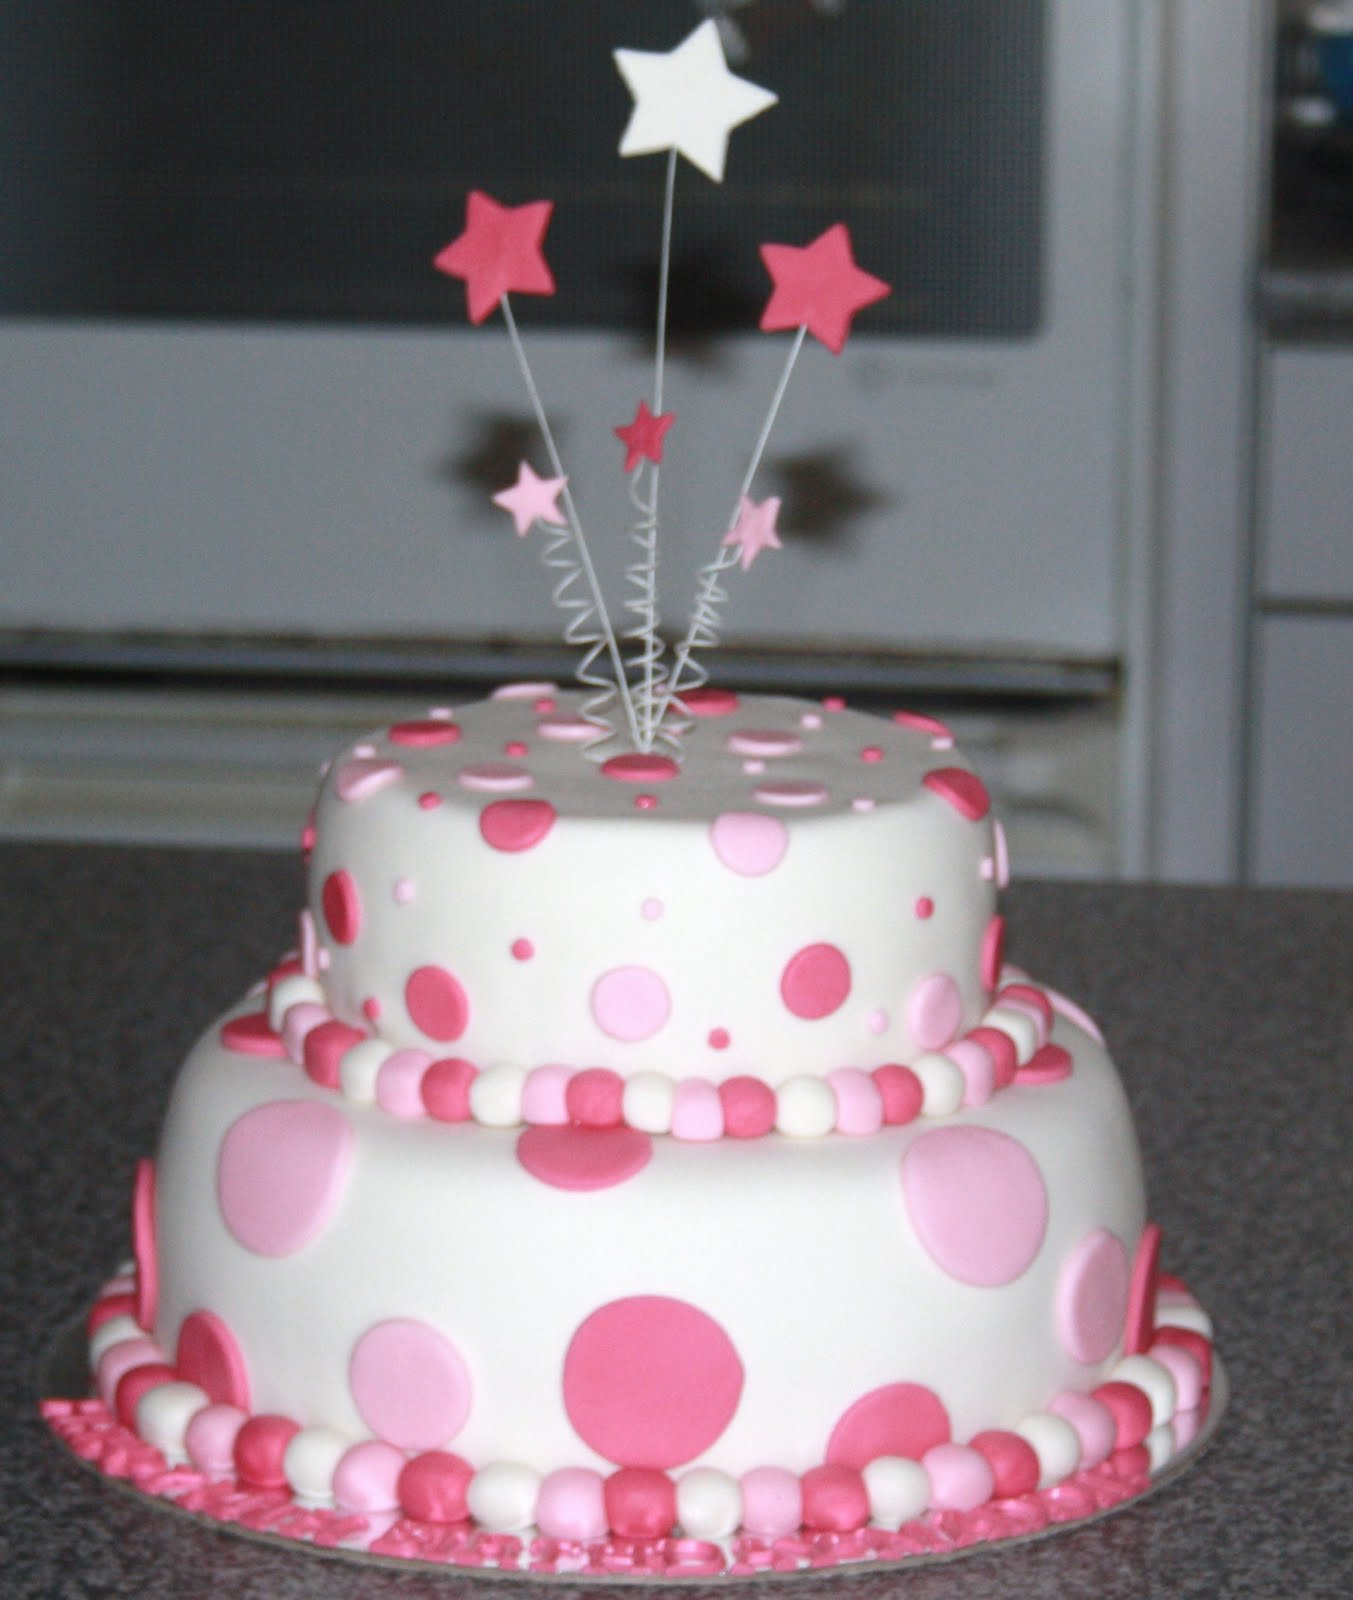 Cake Decorating Dots : Cake Decorating Dots